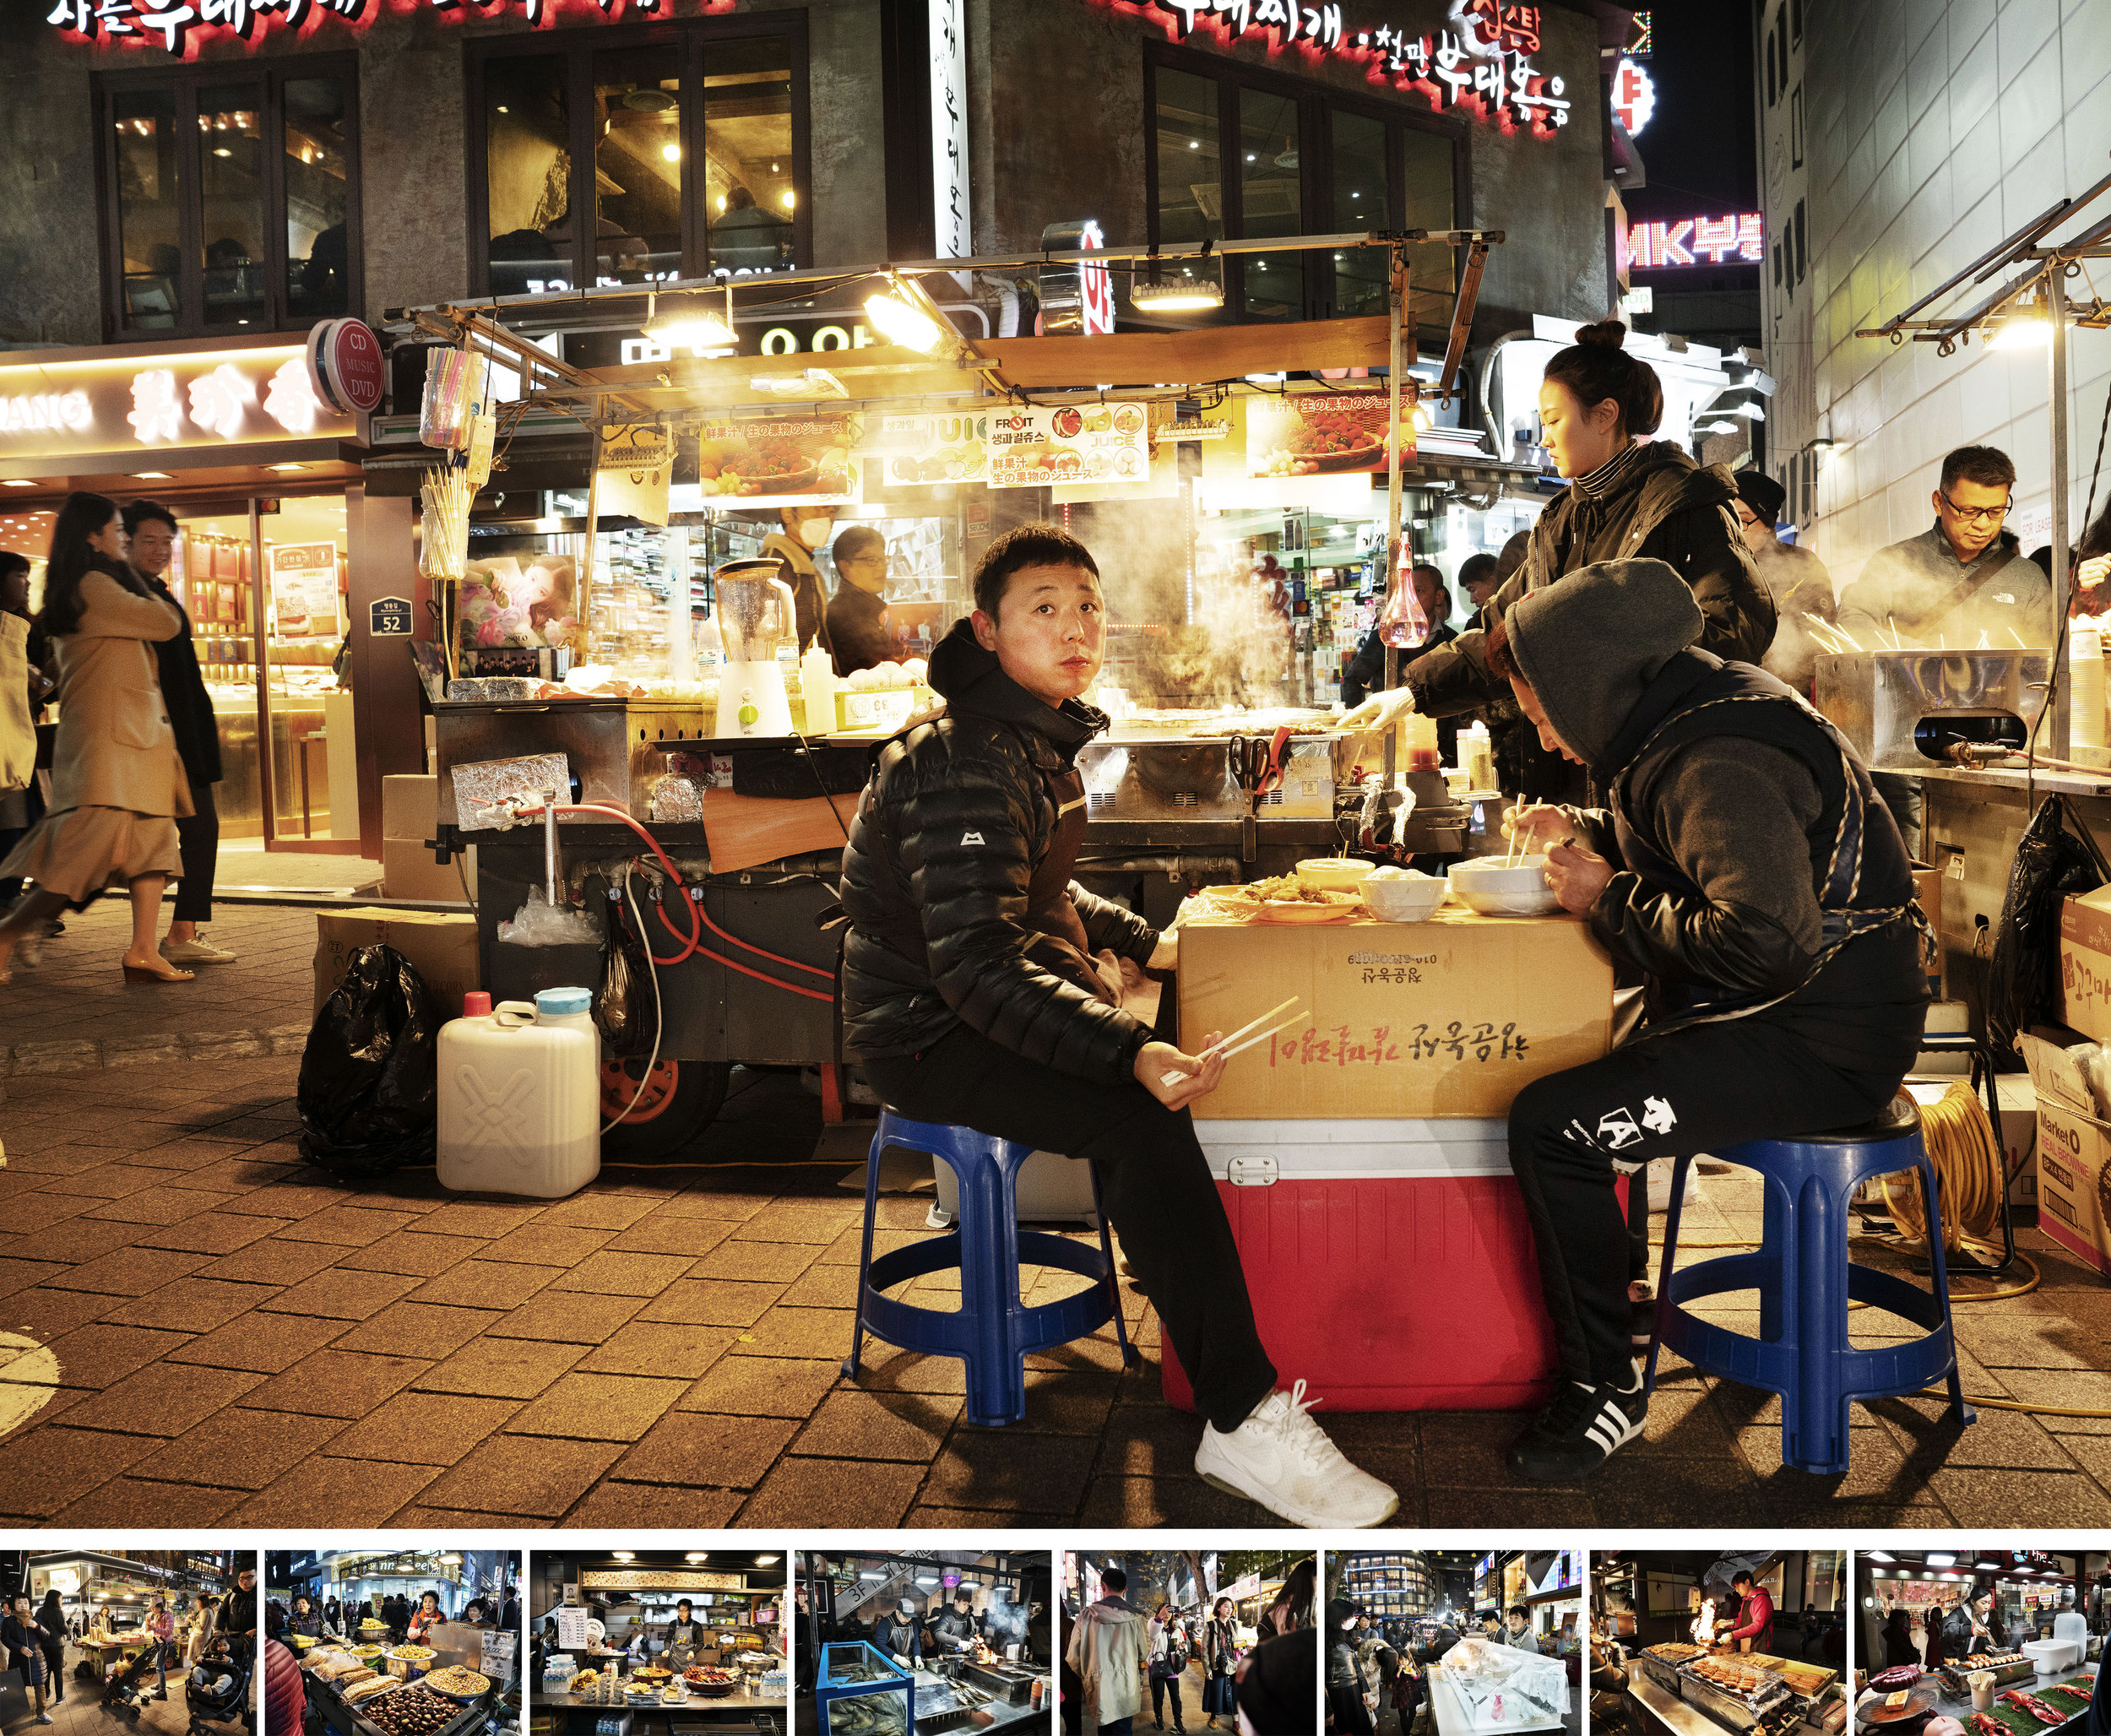 Seoul Food - Photographic DocumentaryMedia: StillsWhen in Korea for work I came across the Myeongdang night food markets. In amongst the colorfully lit fashion district the food market created an amazing buzz and spectacle. There were all sorts of foods on offer and it attracted people like bees to a honeypot. A good place to spend the night.